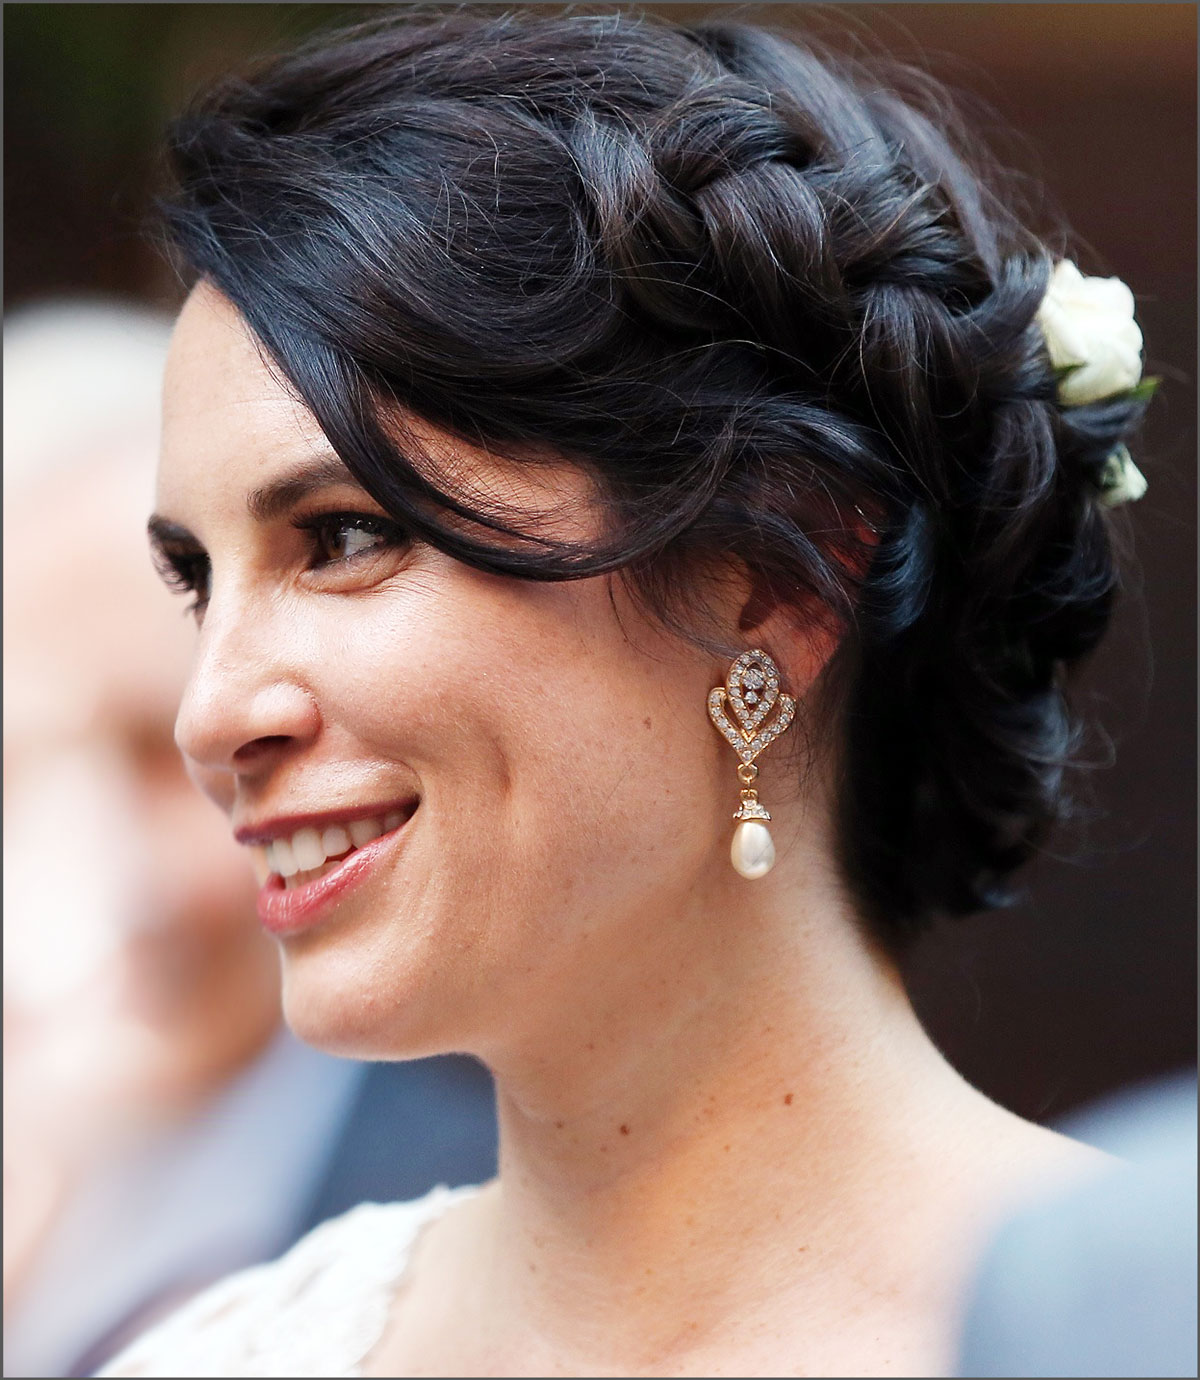 kate-sutton-hair-border.jpg